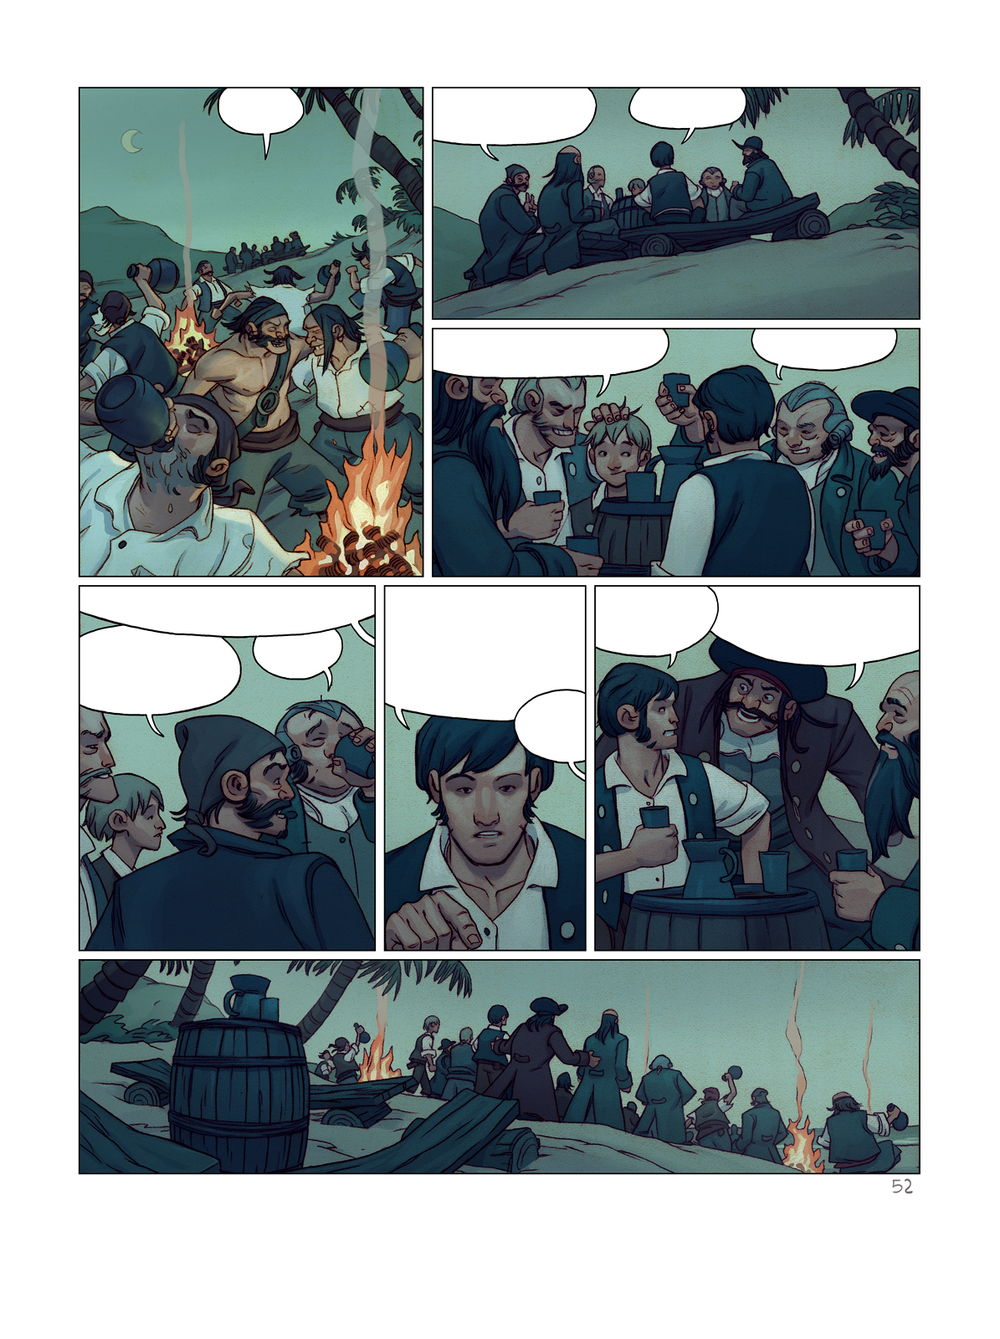 7pirates_page-52-color.jpg